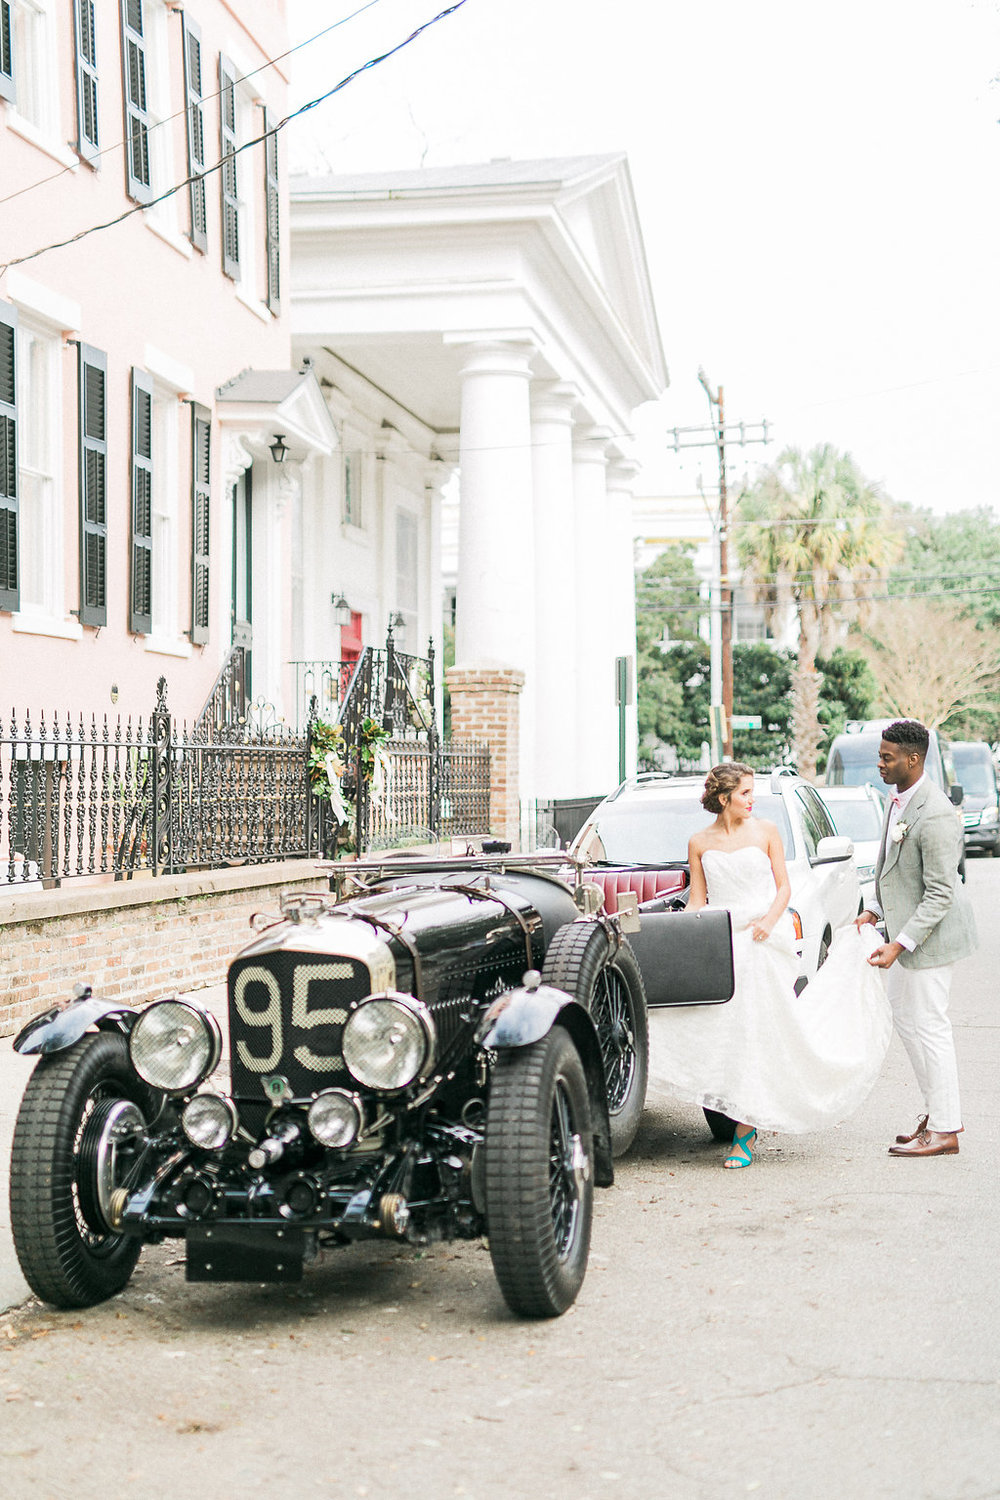 charleston spring brunch elopement pop up wedding planners at the parsonage - atlanta, greenville wedding planners - scarlet plan _ design (430).jpg